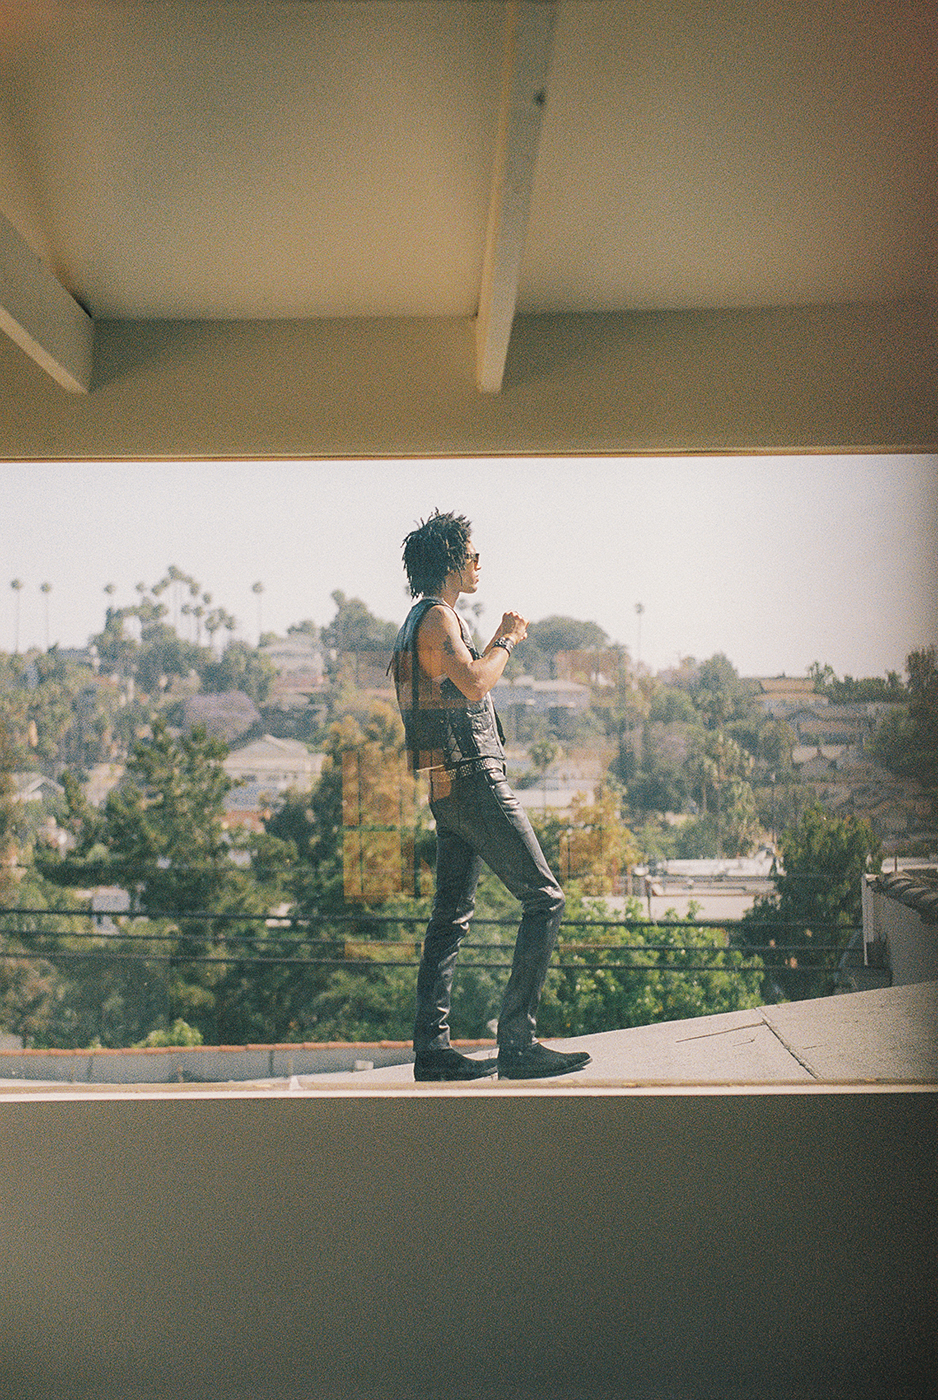 Model on roof shot from inside house by Michael Julius for New Republic footwear Sonoma campaign